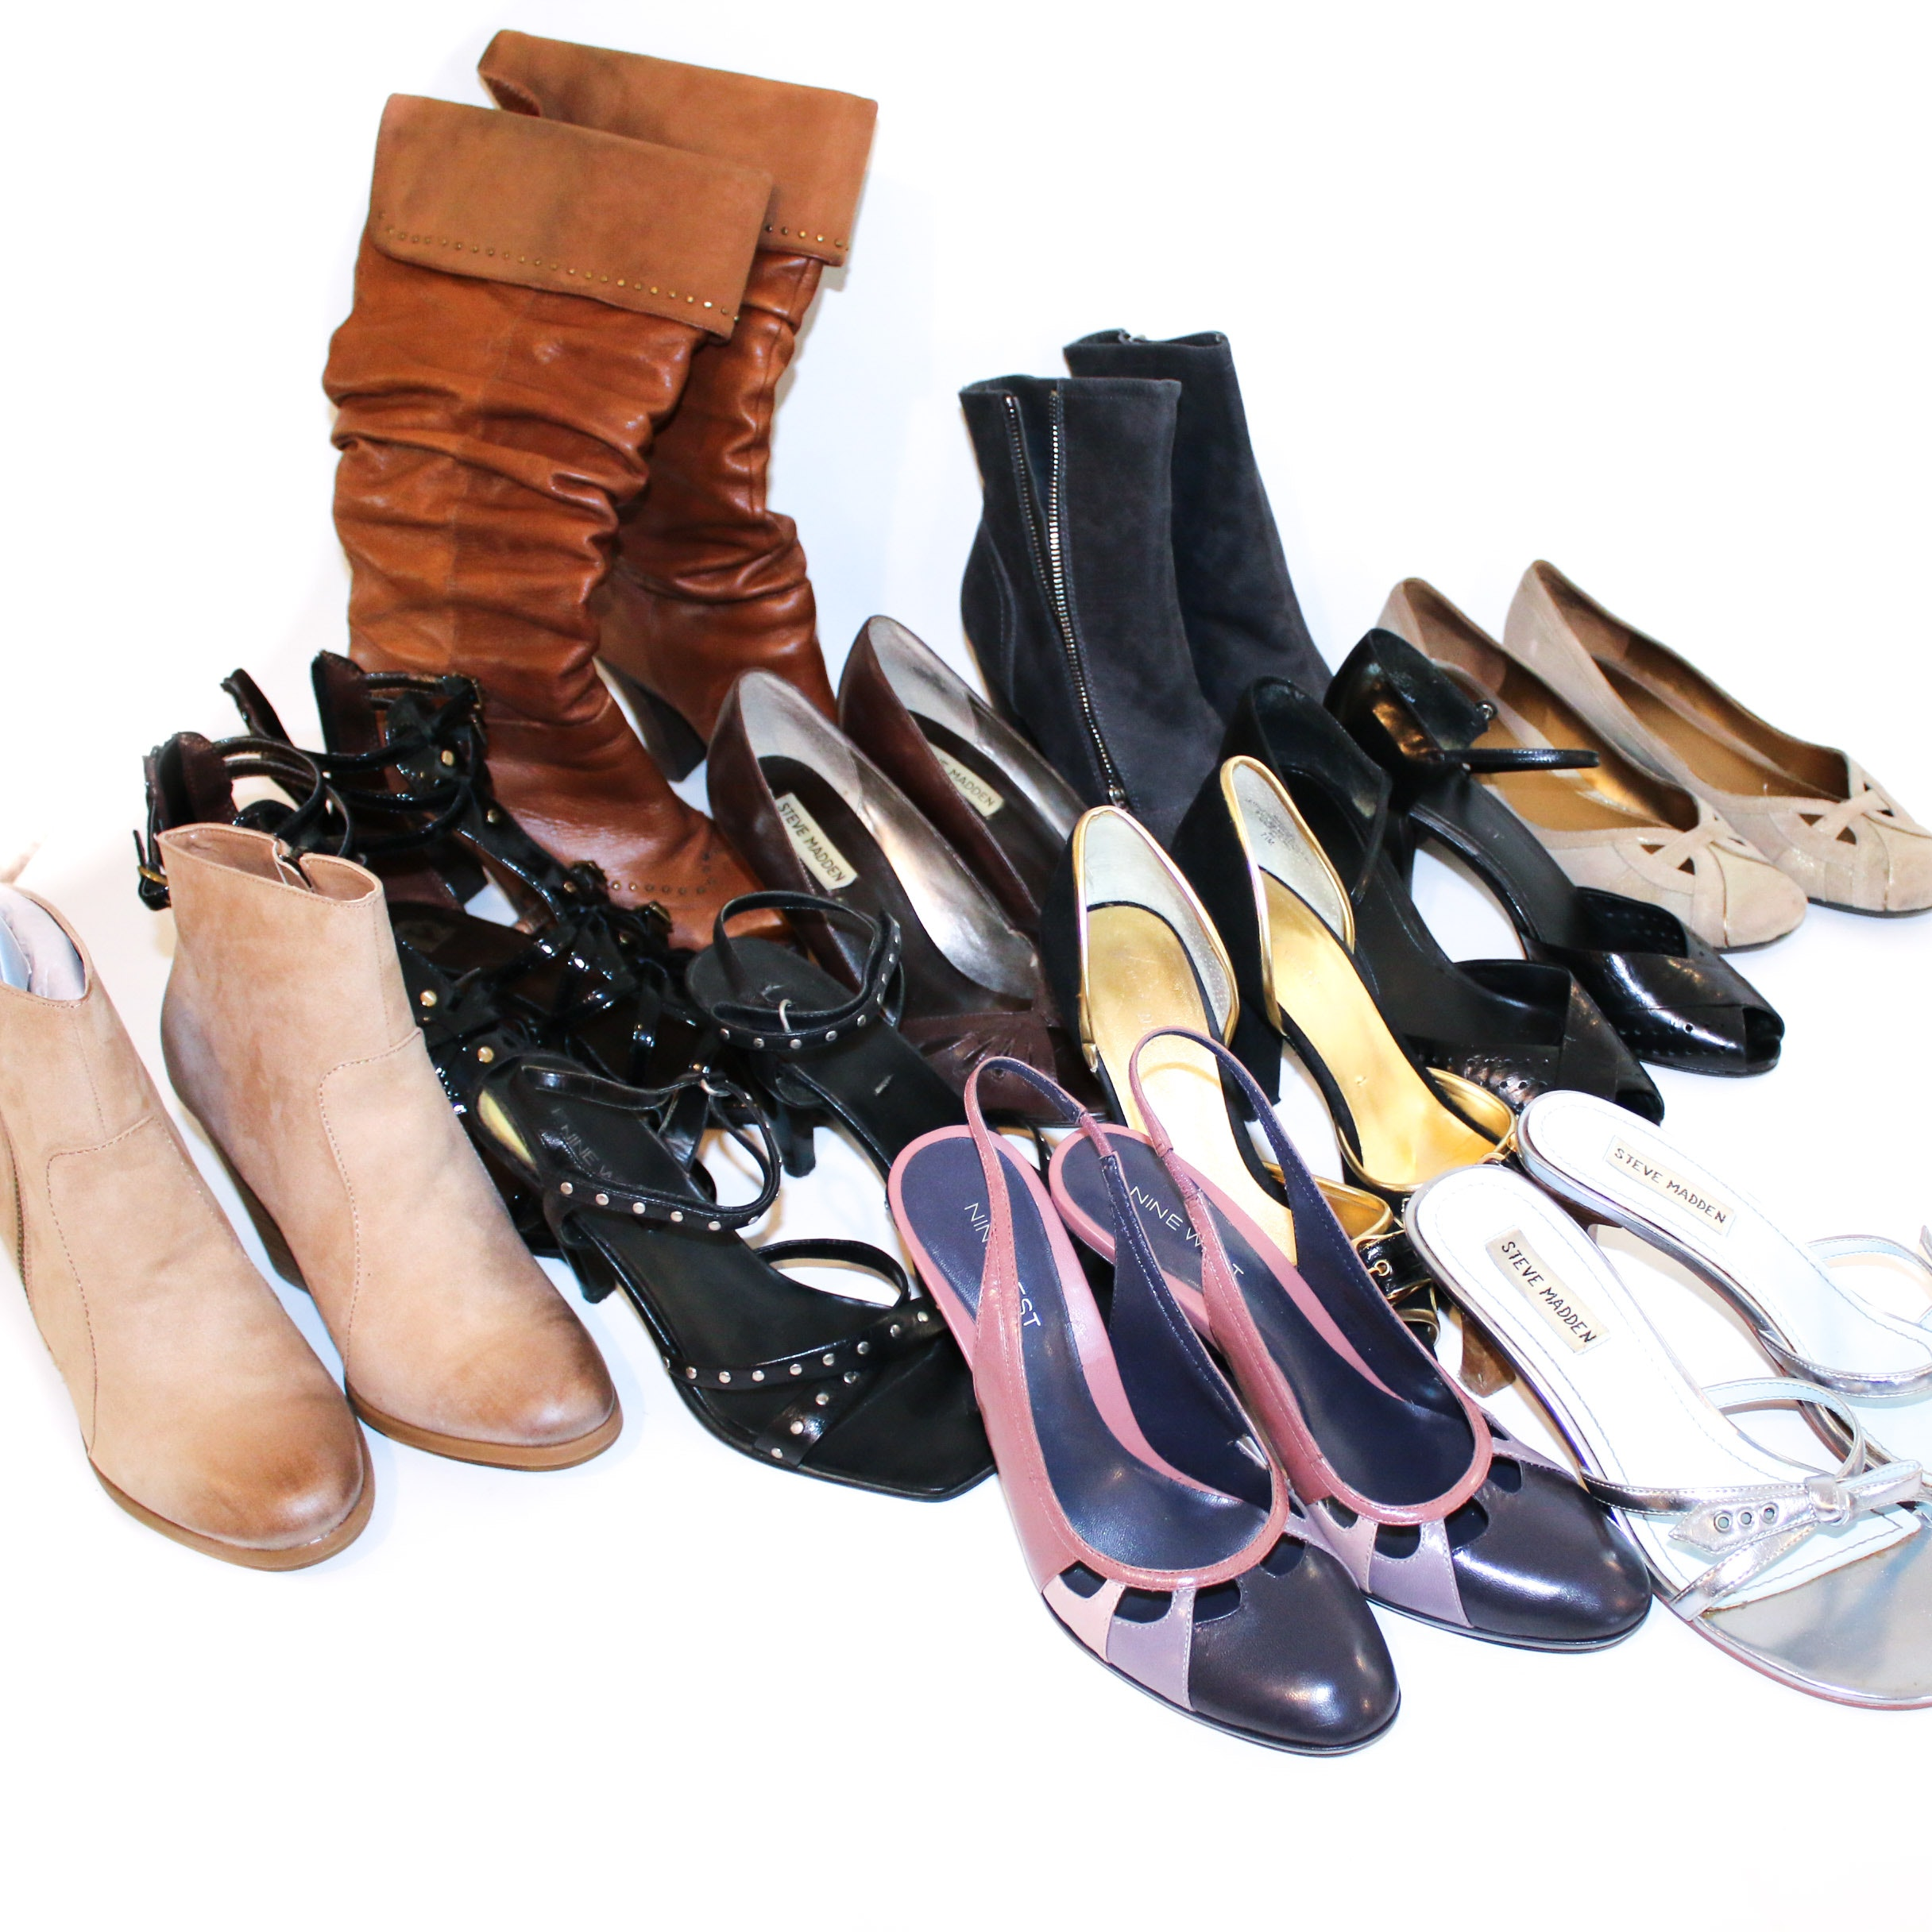 Kenneth Cole Reaction, Nine West, Steve Madden and Other Shoes